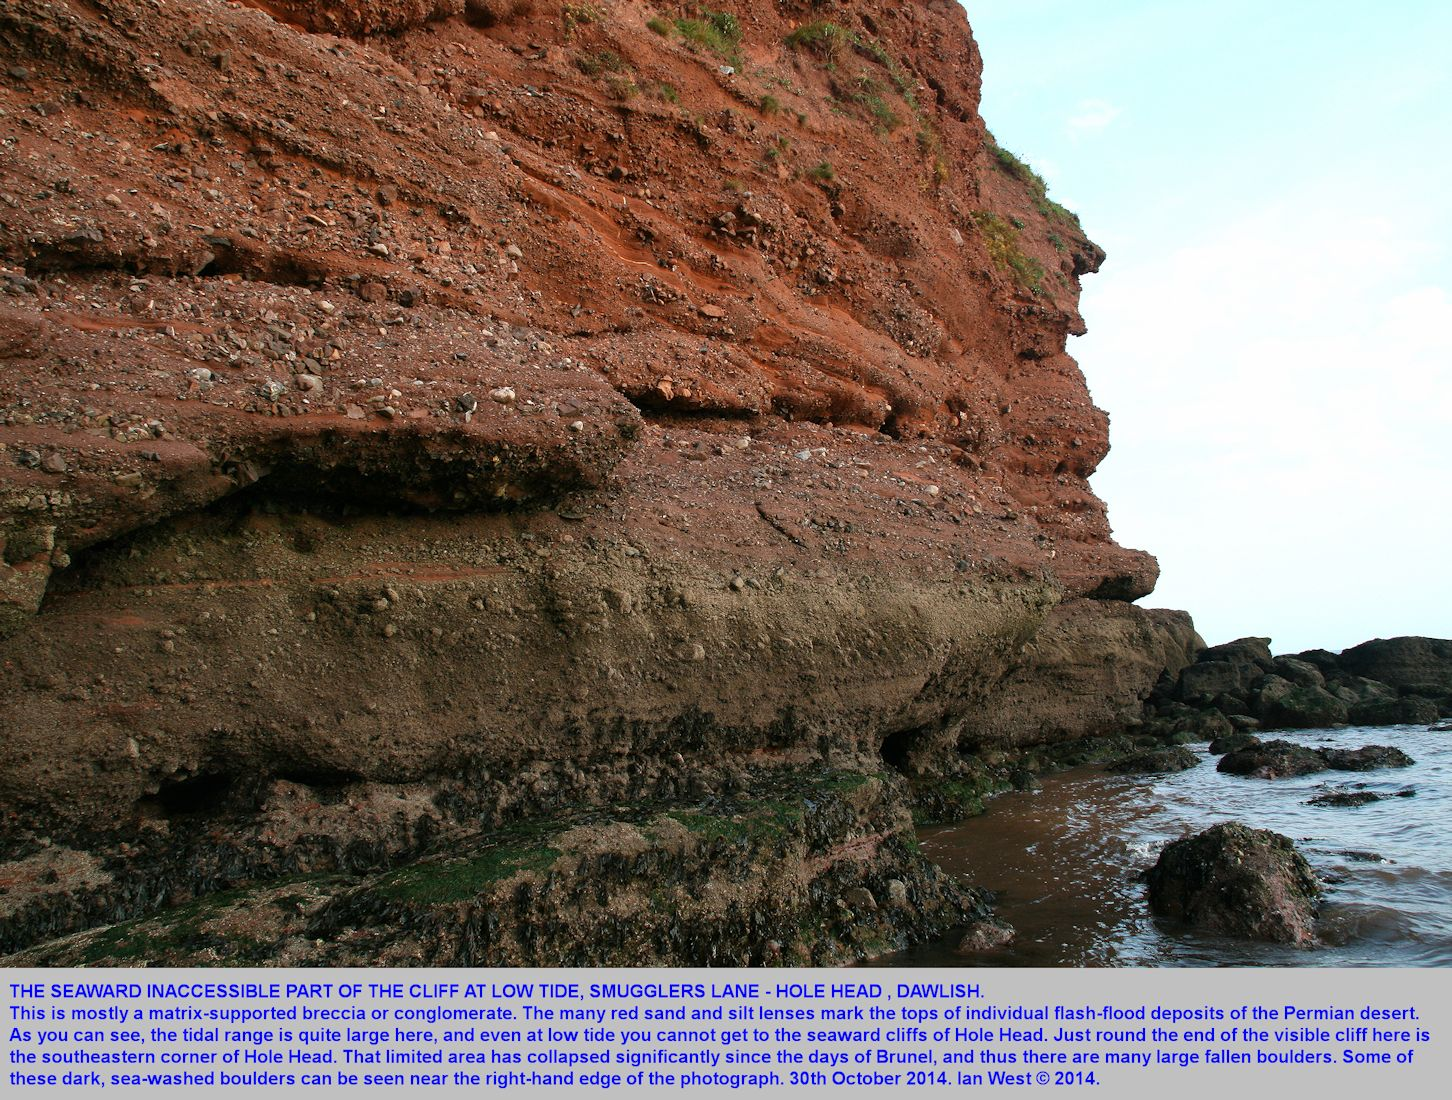 The seaward part of the vertical cliff of Permian Teignmouth Breccia at Smugglers Lane, Hole Head, Dawlish, Devon, 30th October 2014